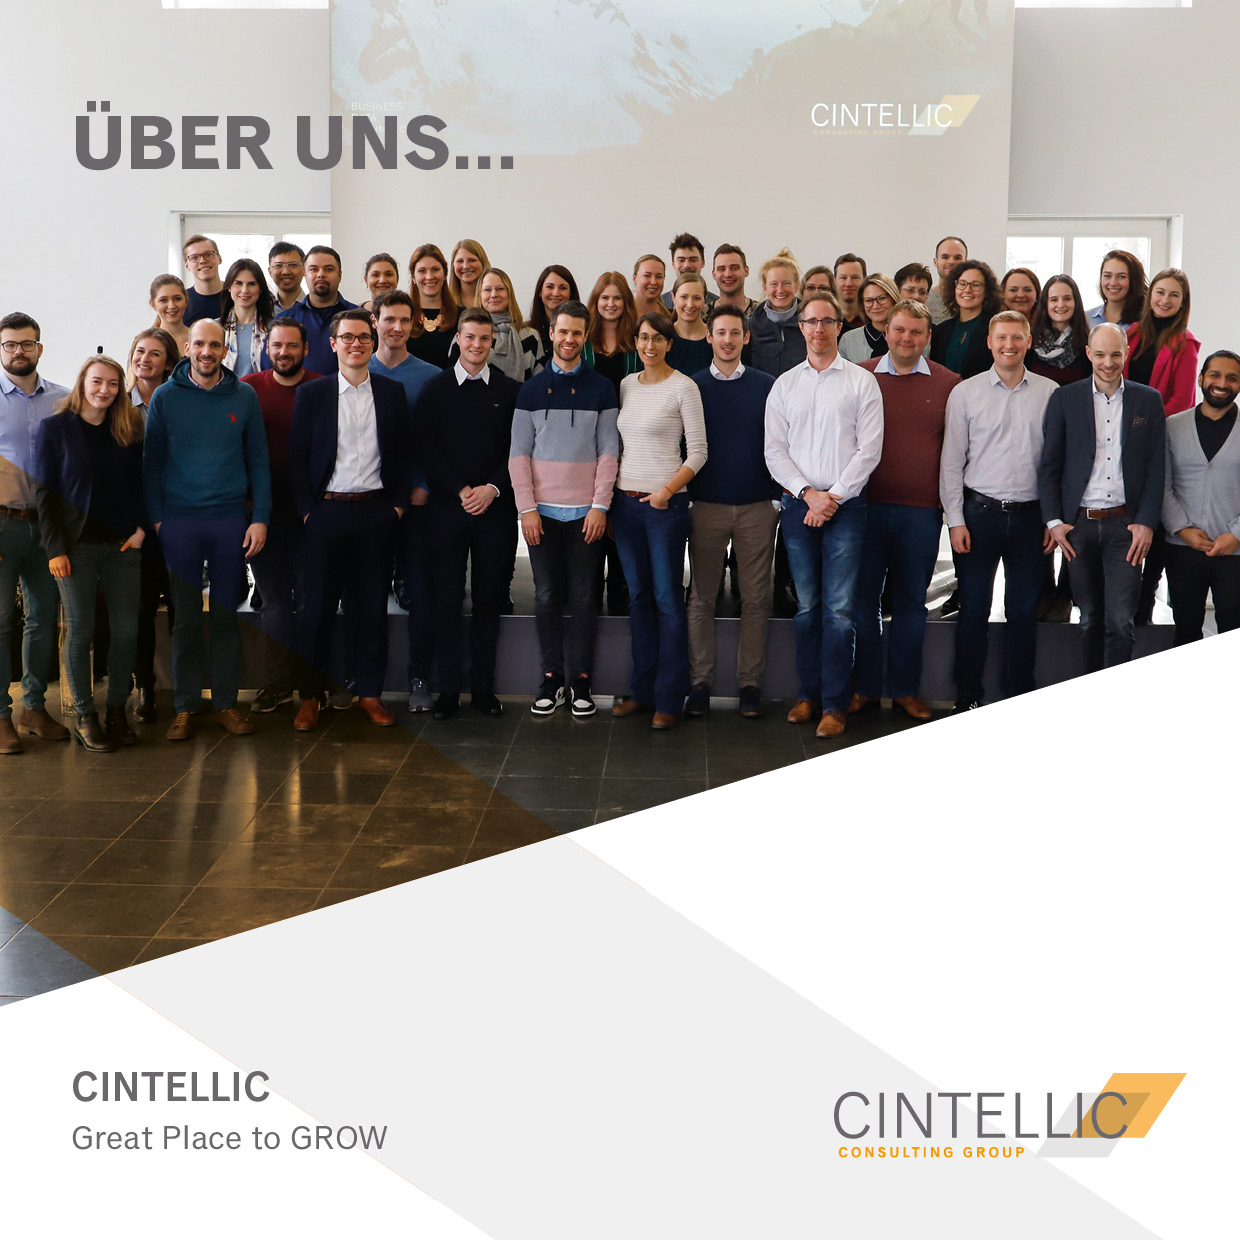 CINTELLIC Karriere Ueber uns Booklet Visual